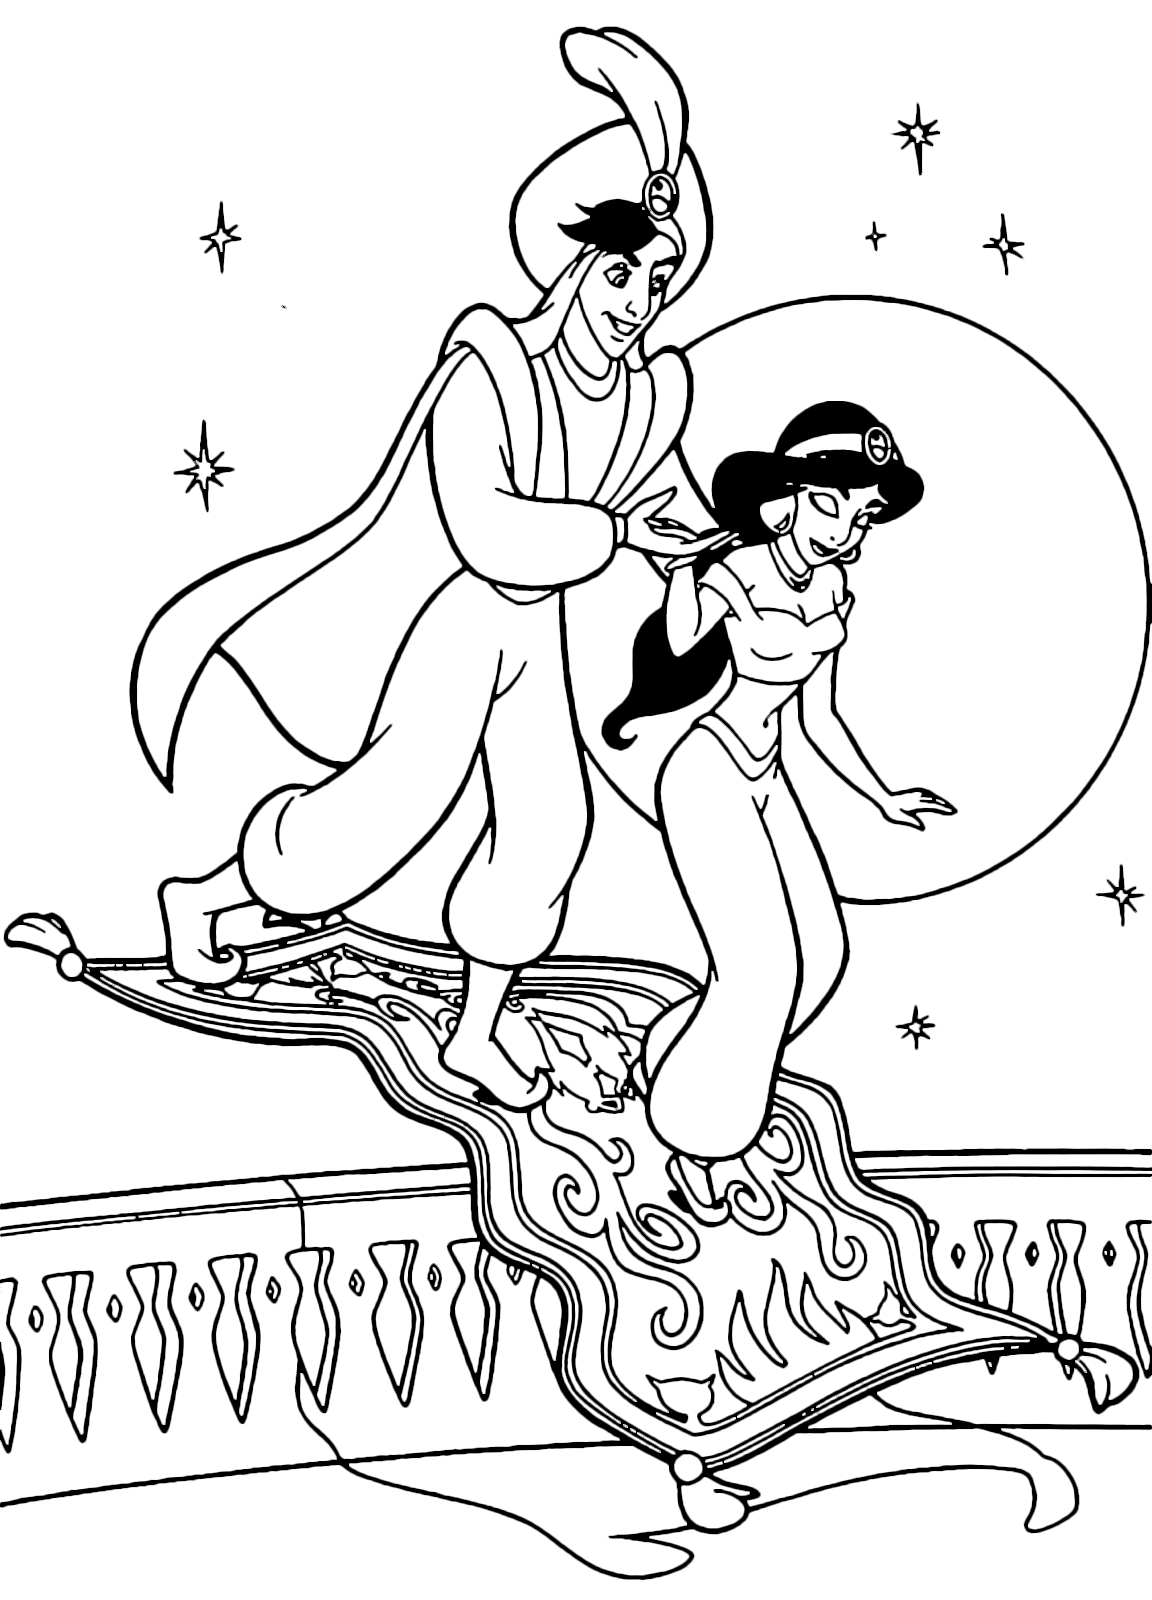 Aladdin - Prince Ali Ababua helps Jasmine get off the flying carpet